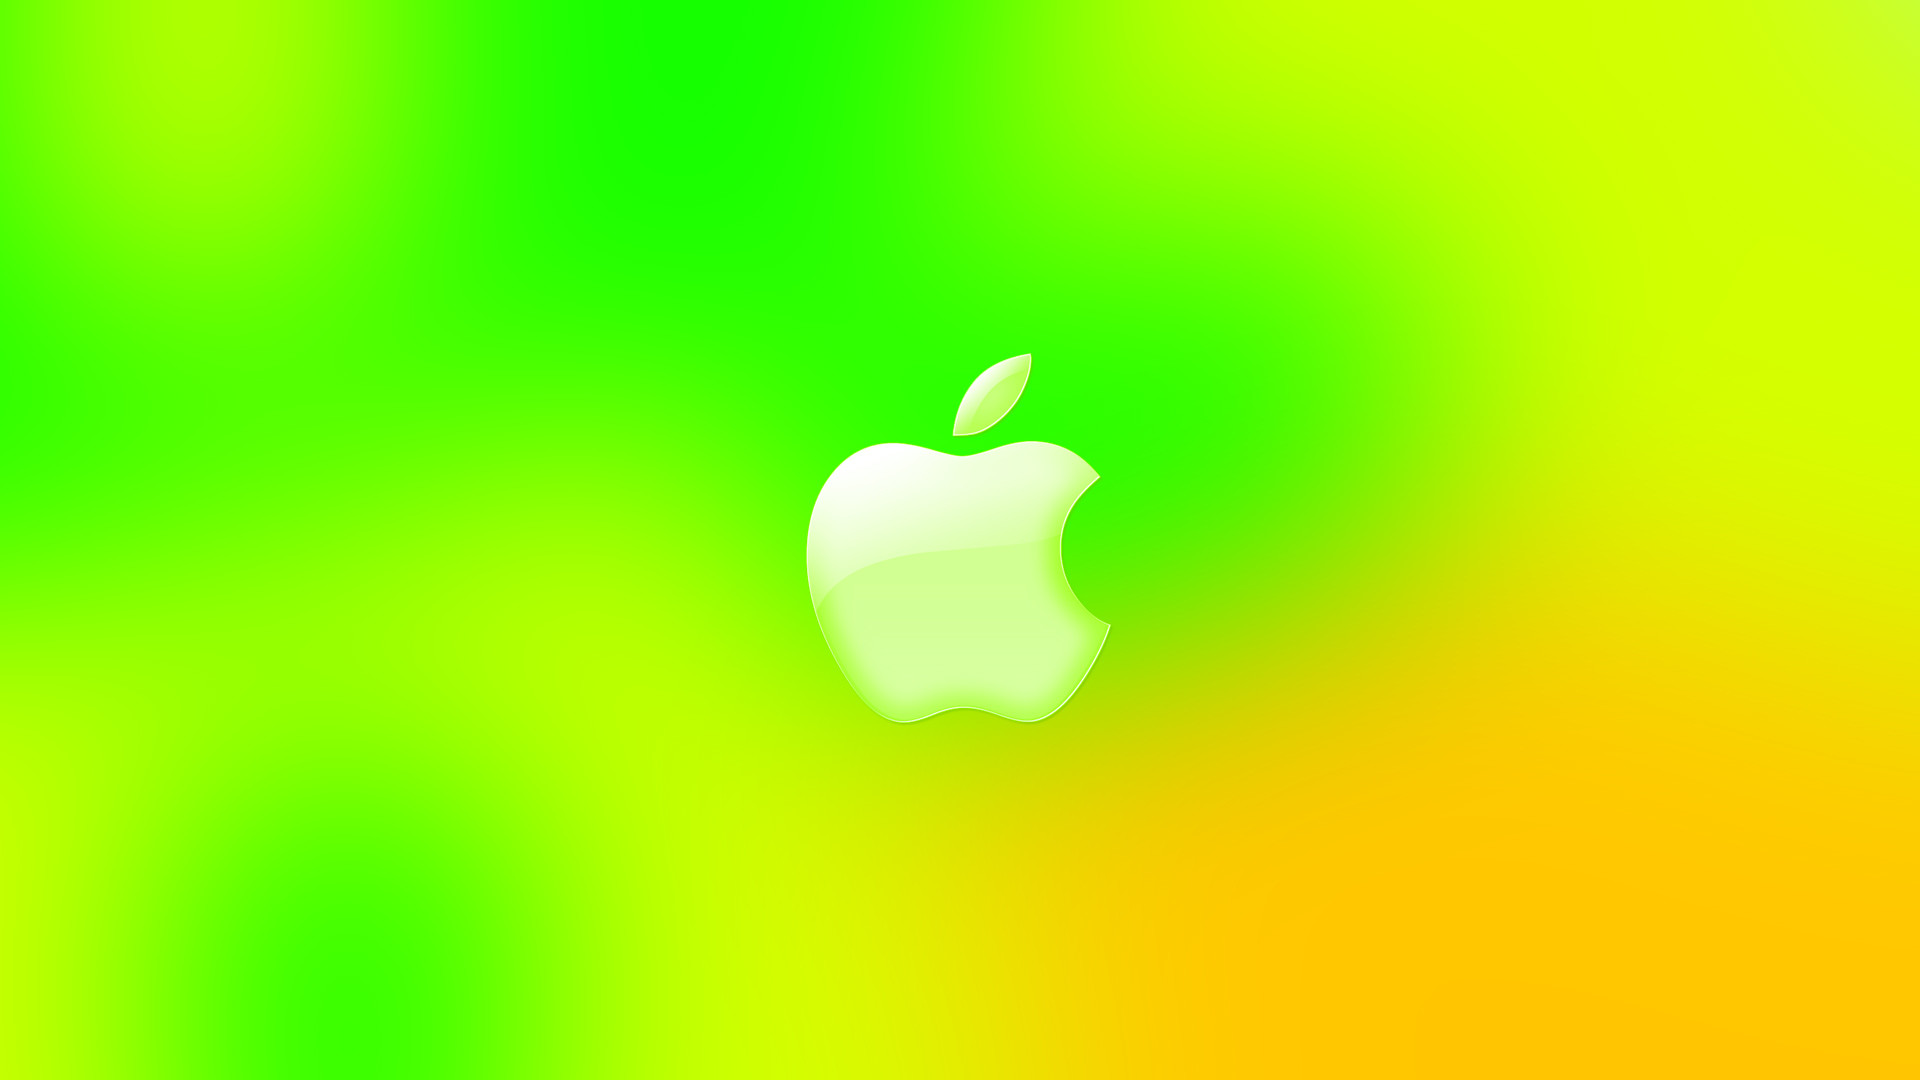 Cool Wallpapers for iPod Touch 66 images